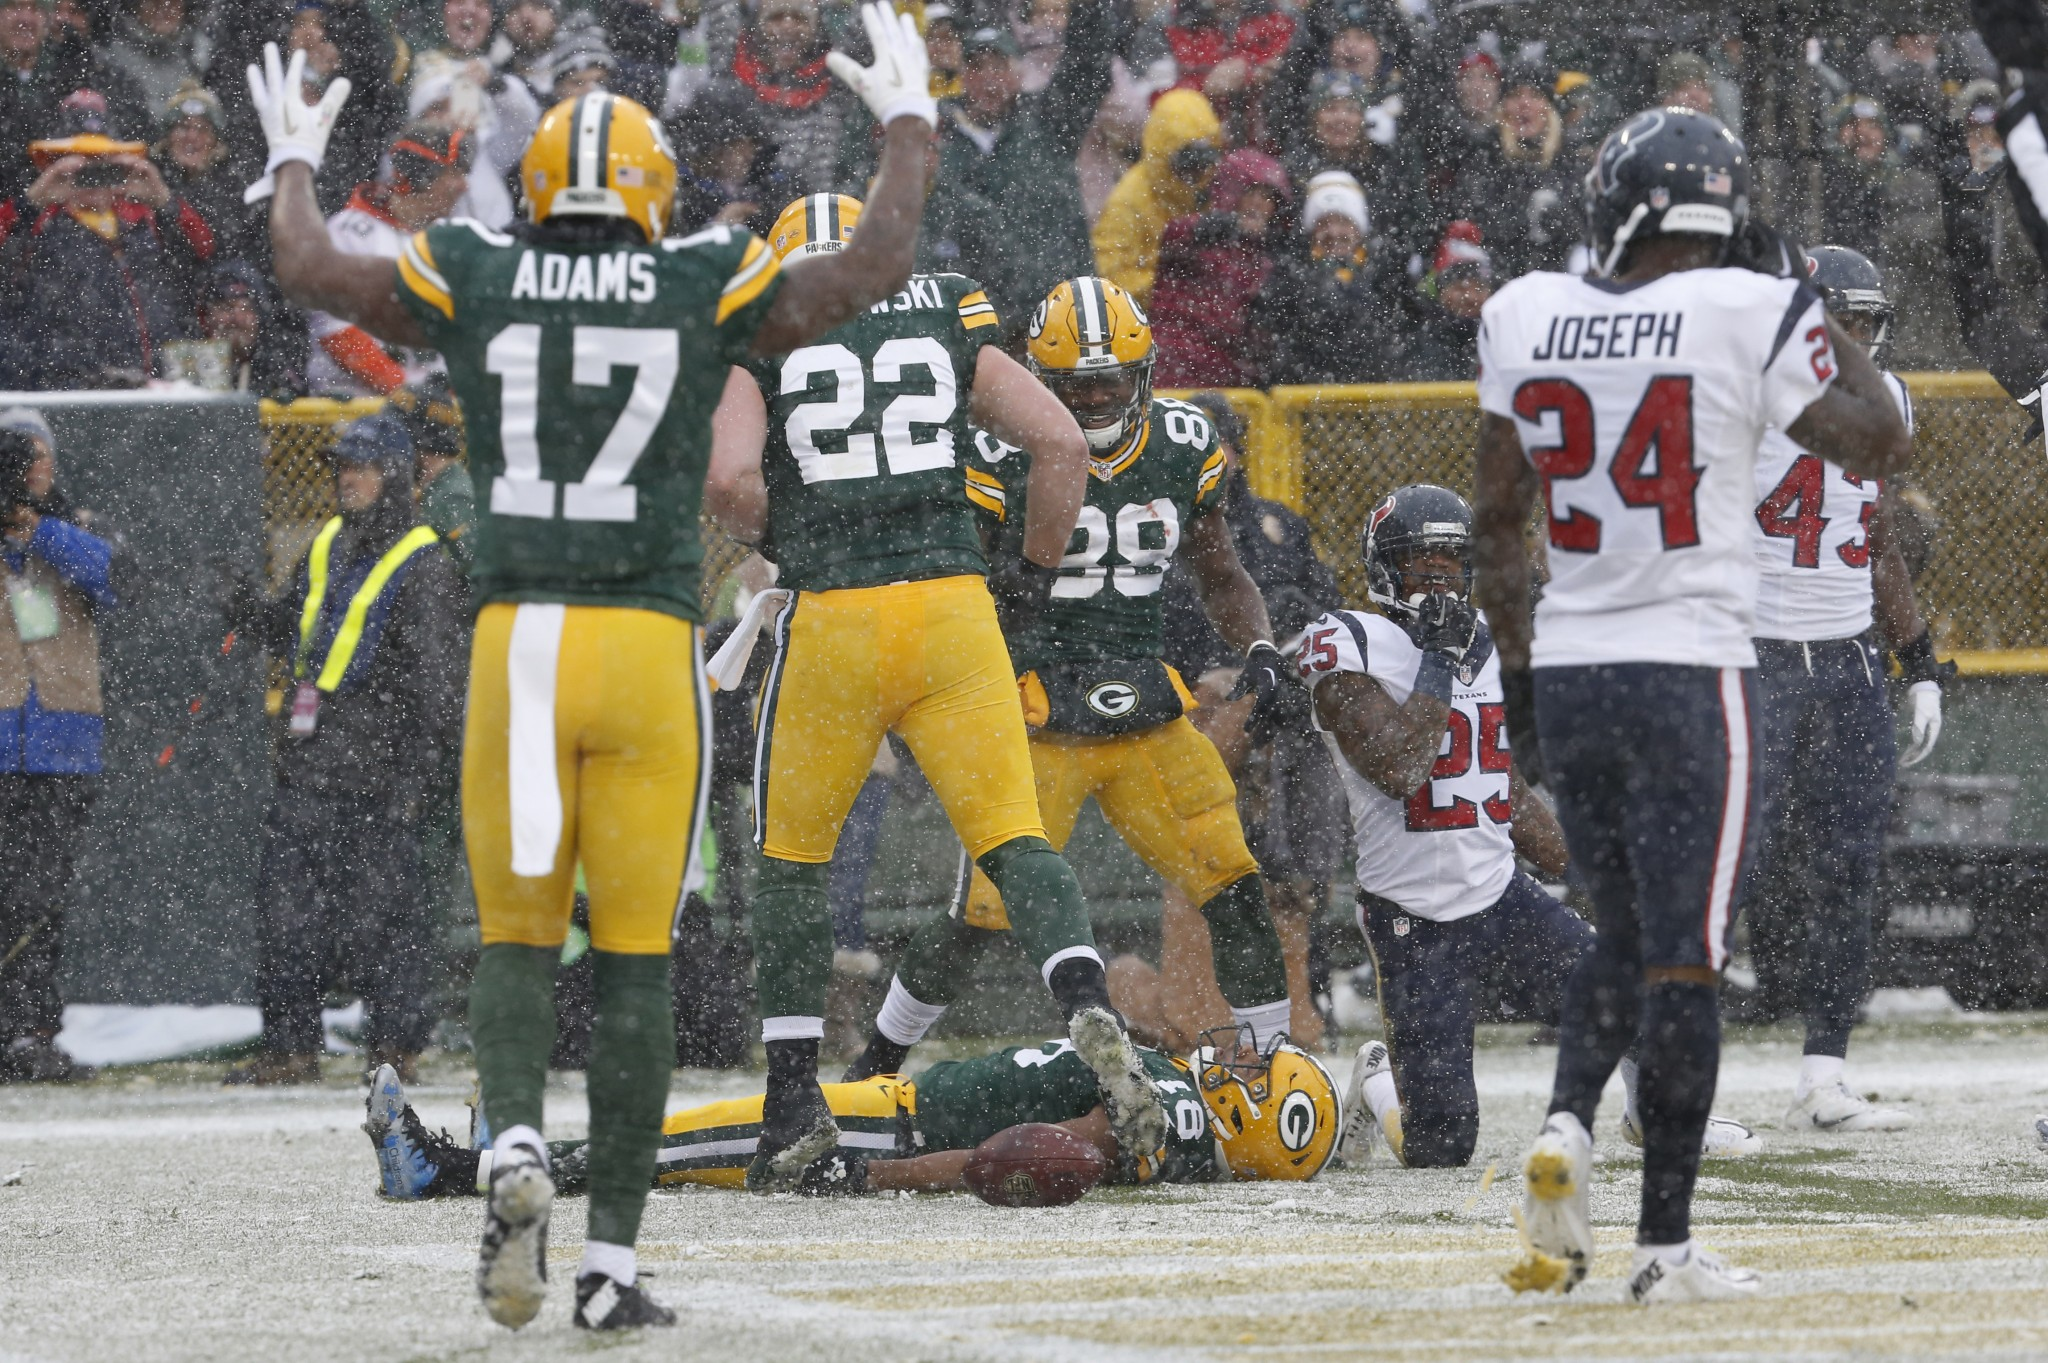 The snowy touchdown celebration that might have cost the 49ers …